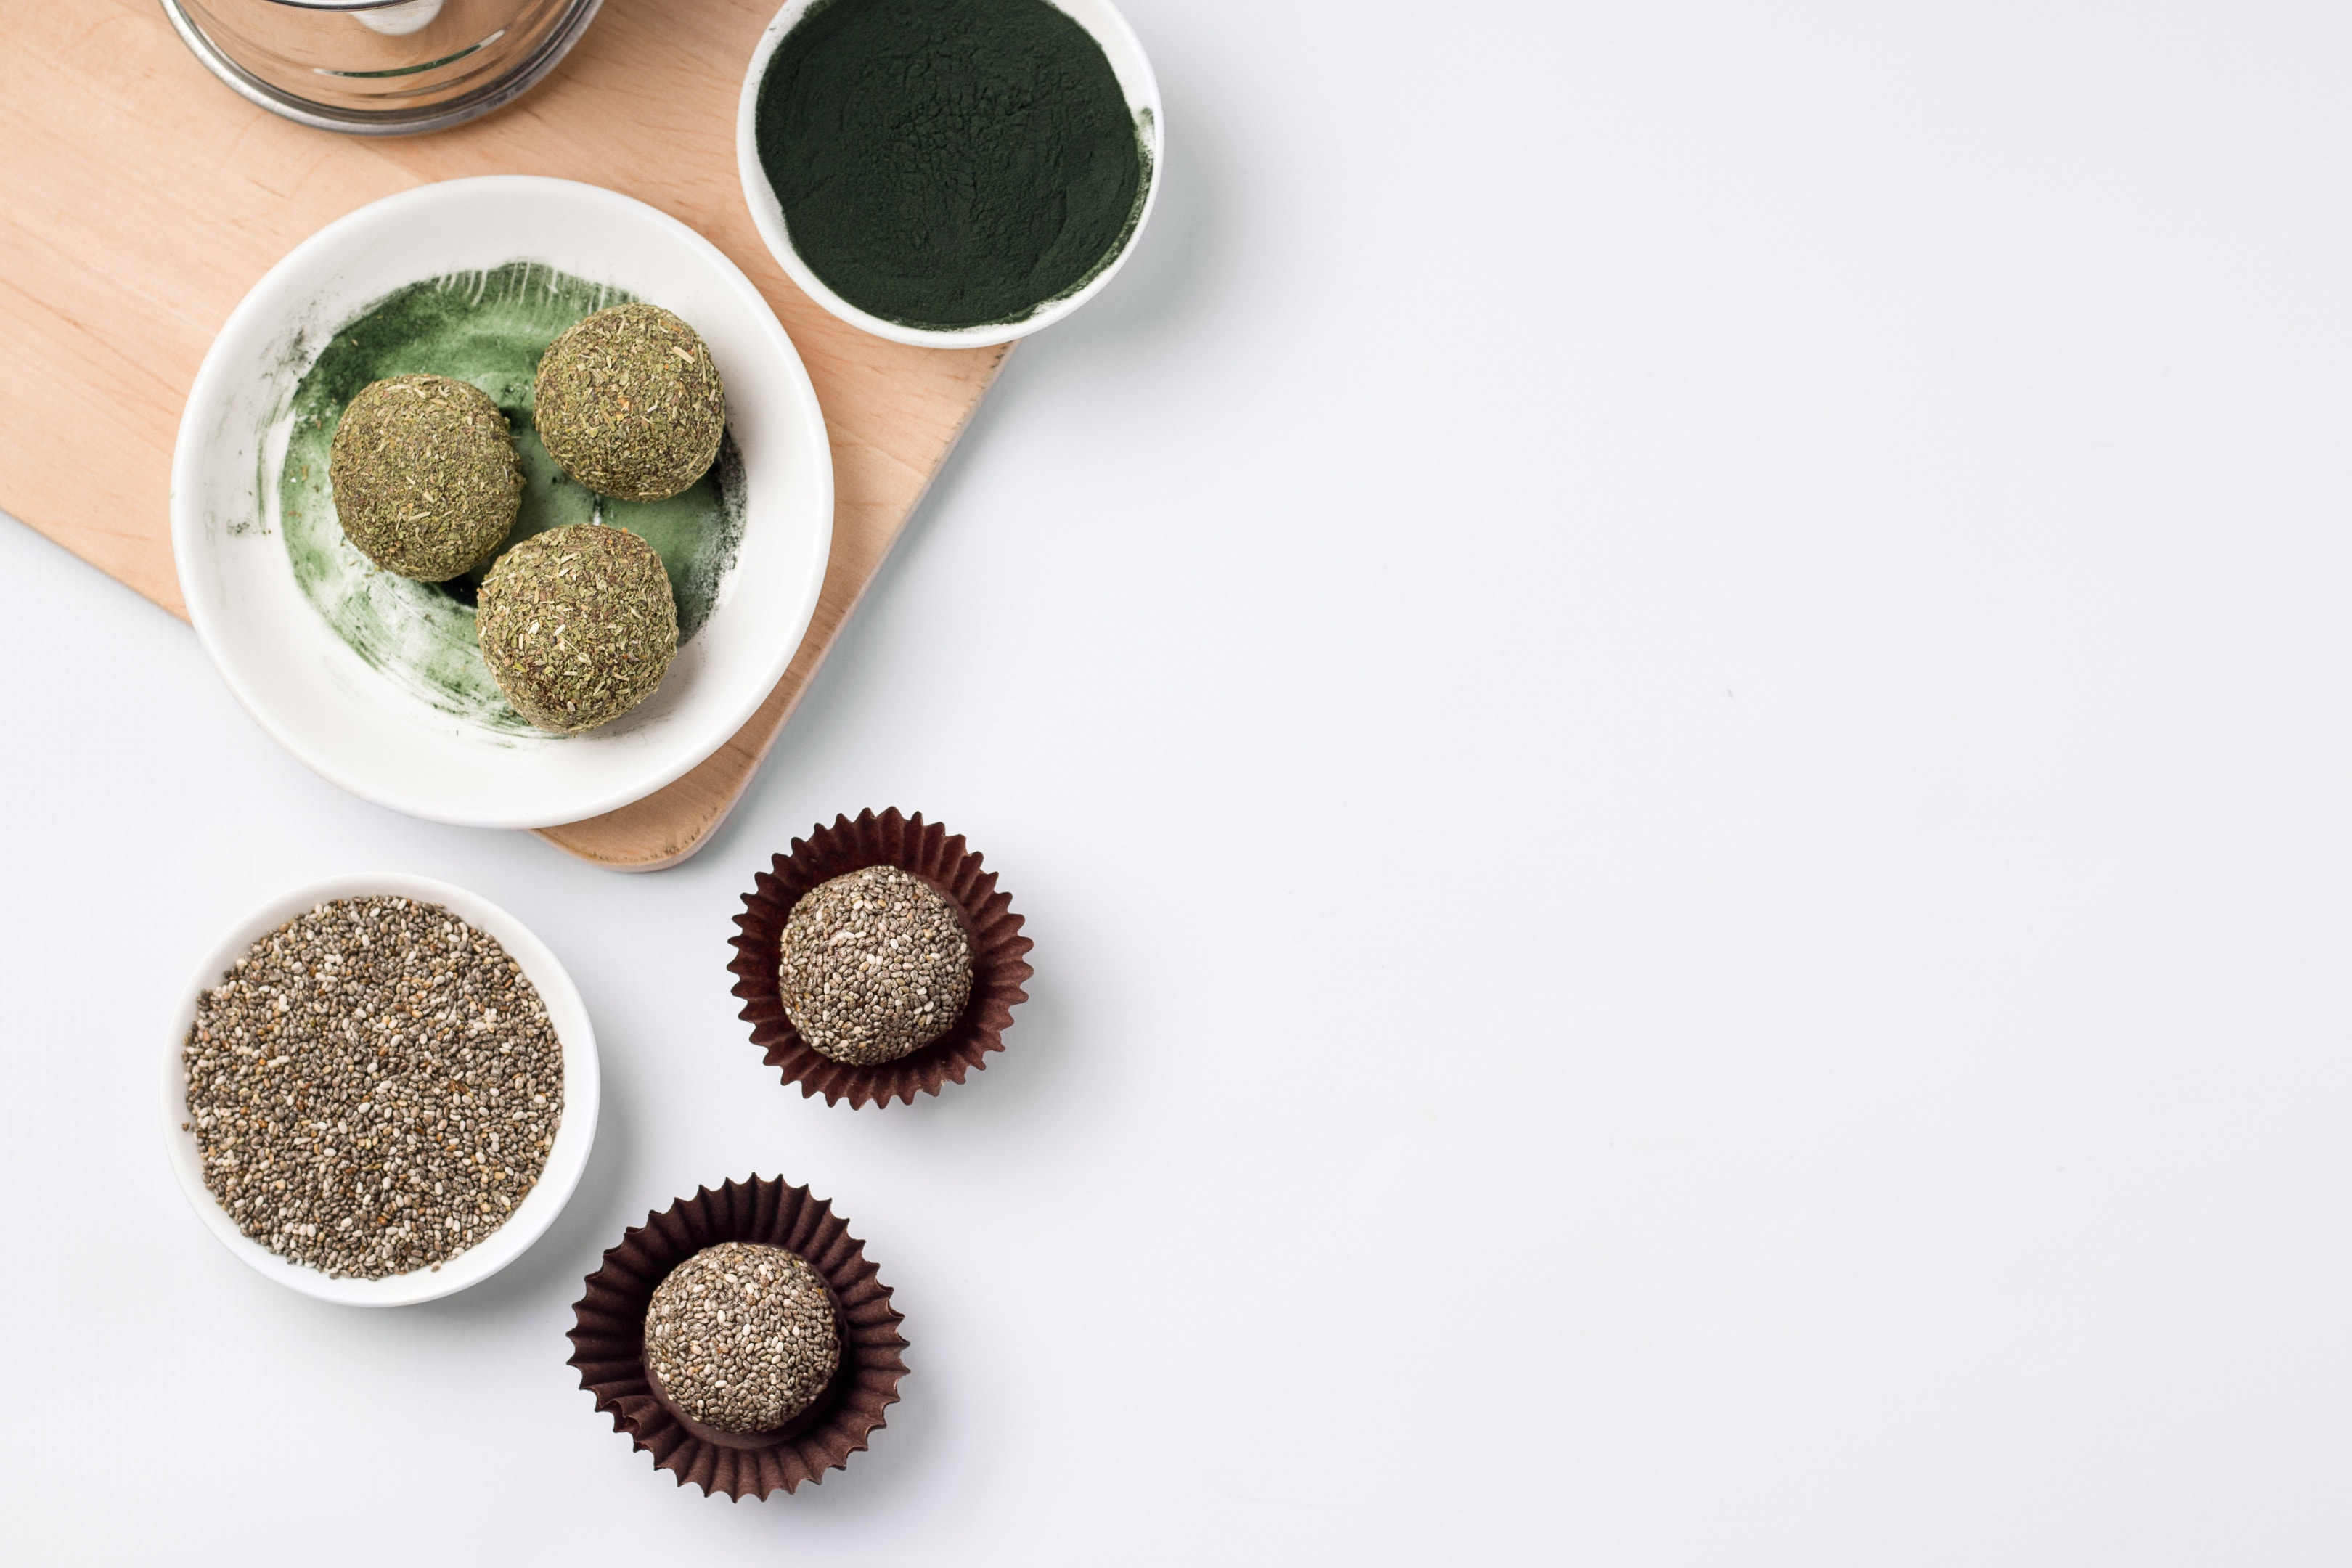 Energy balls of dried fruits with spirulina and chia seeds